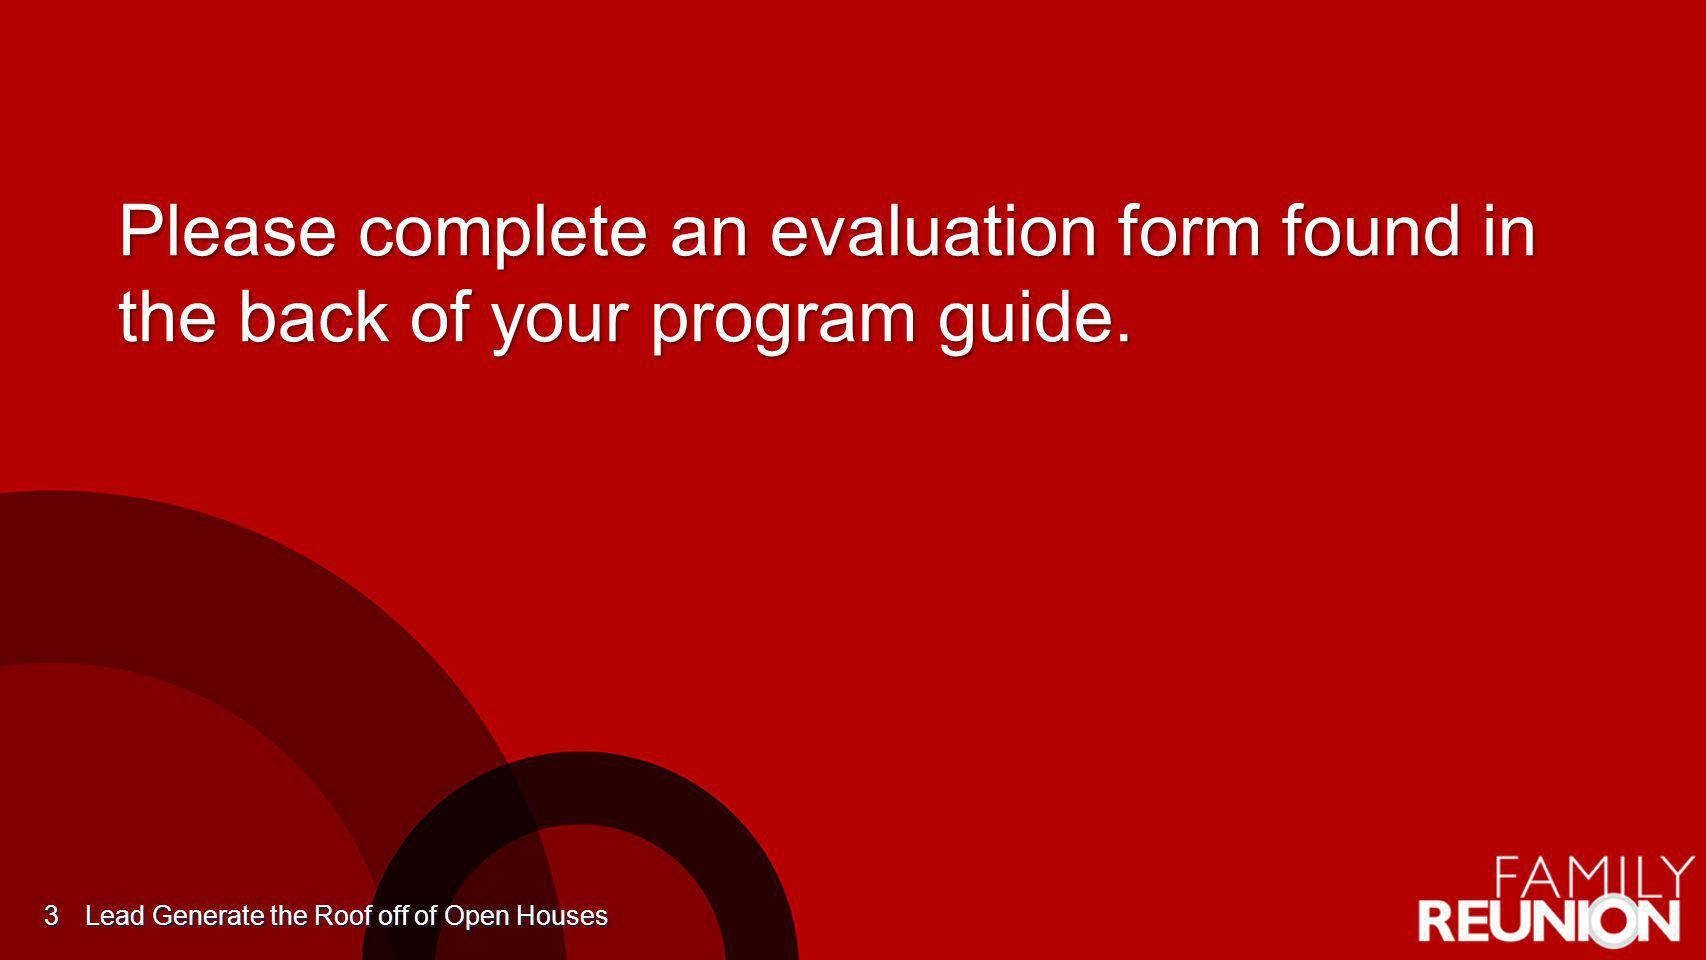 KWFR14 3/31/2017 6:29:16 PM. Please complete an evaluation form found in the back of your program guide.